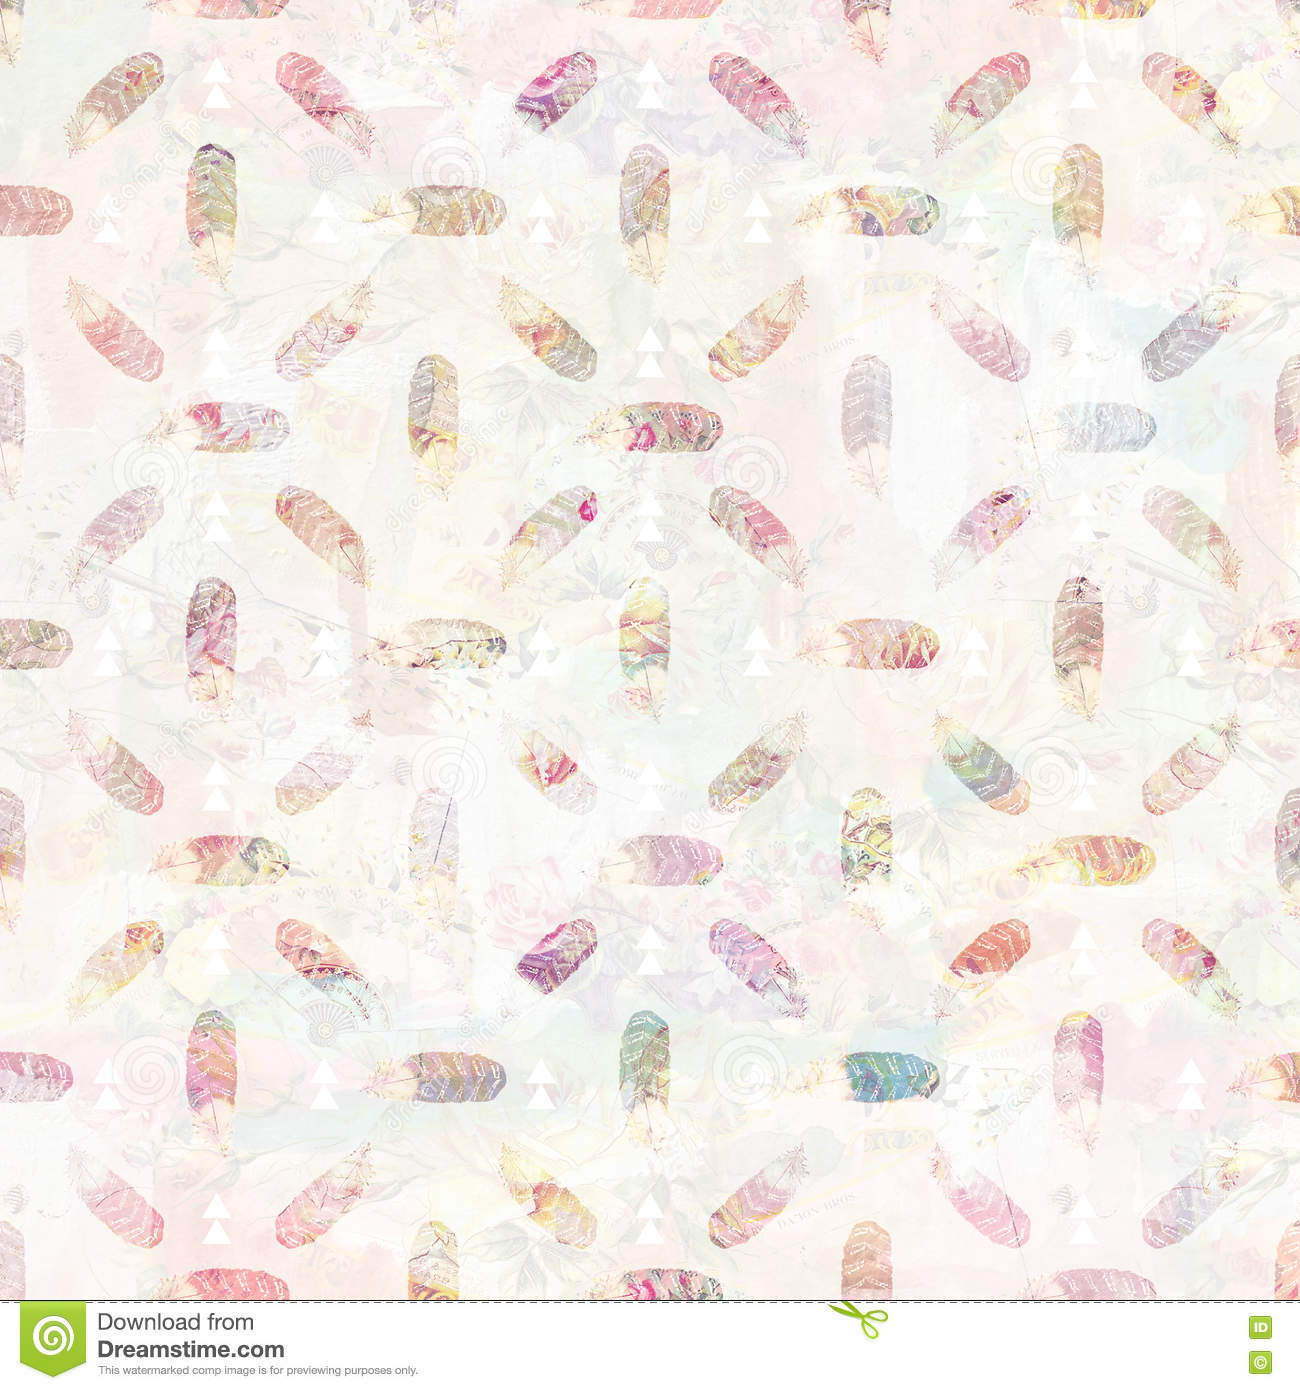 Vintage feather and arrows tribal background pattern in soft pastel colors